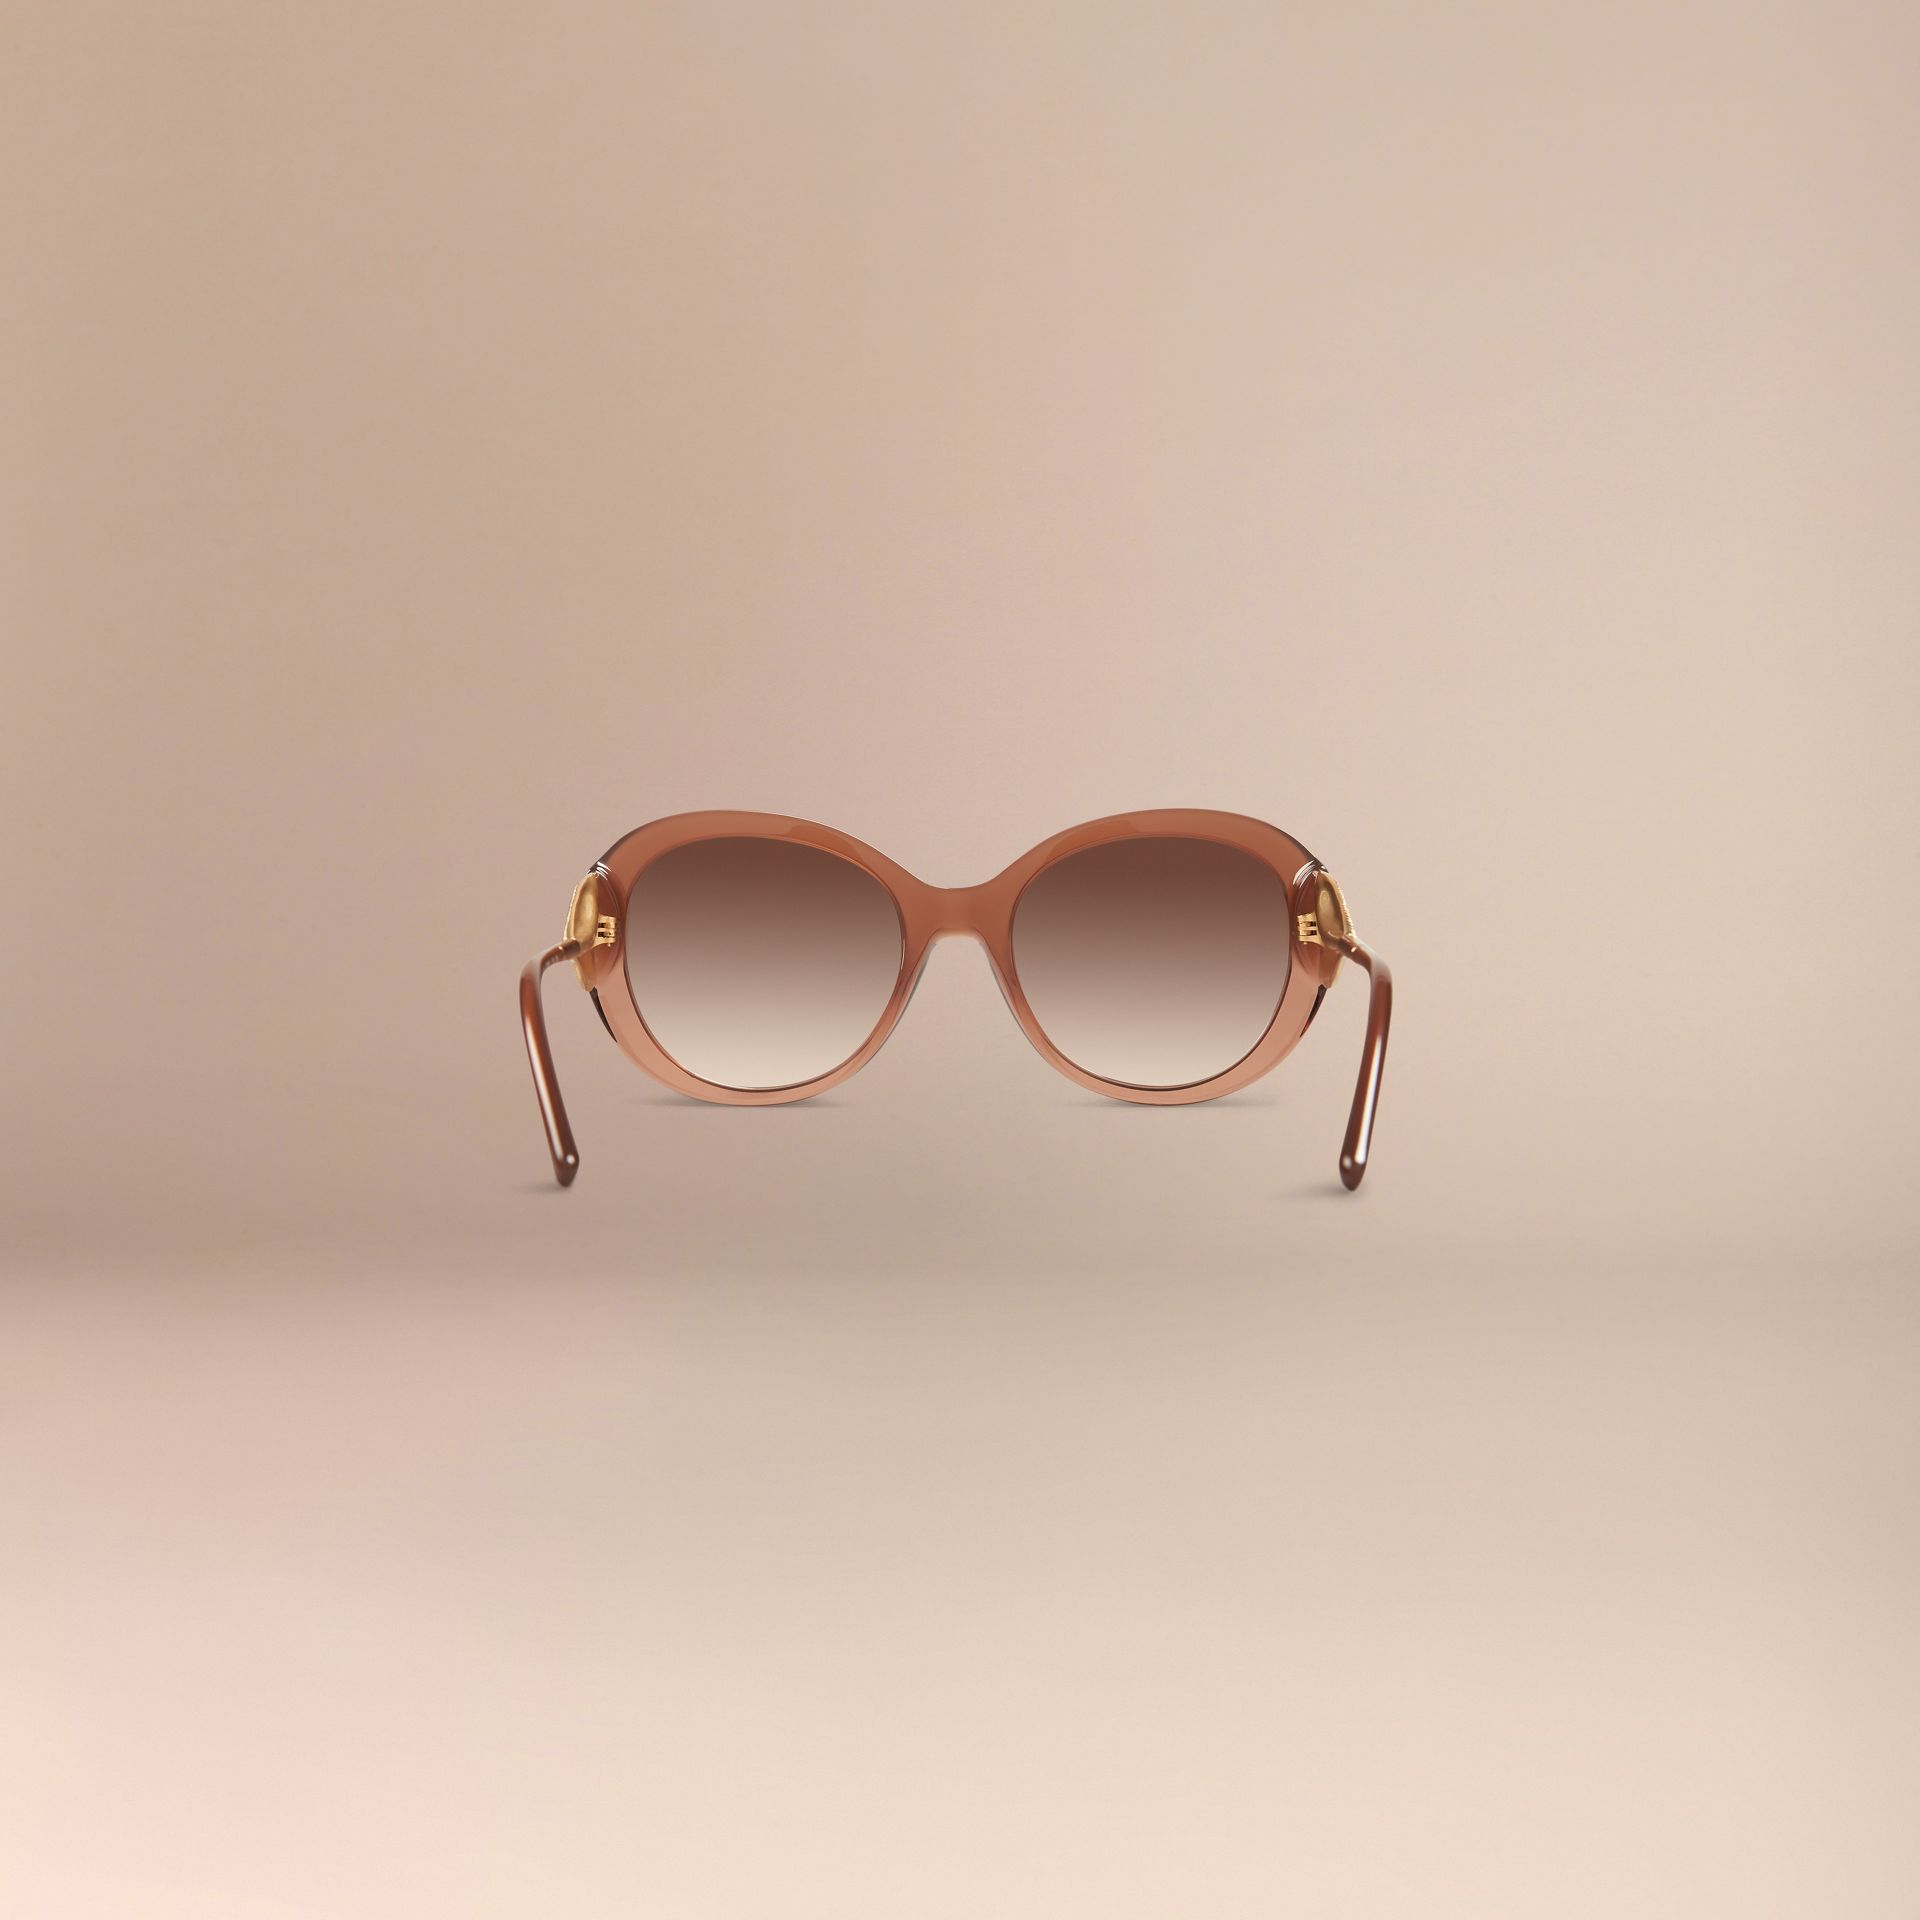 Oversize Round Frame Sunglasses in Fawn Pink - Women | Burberry - gallery image 4